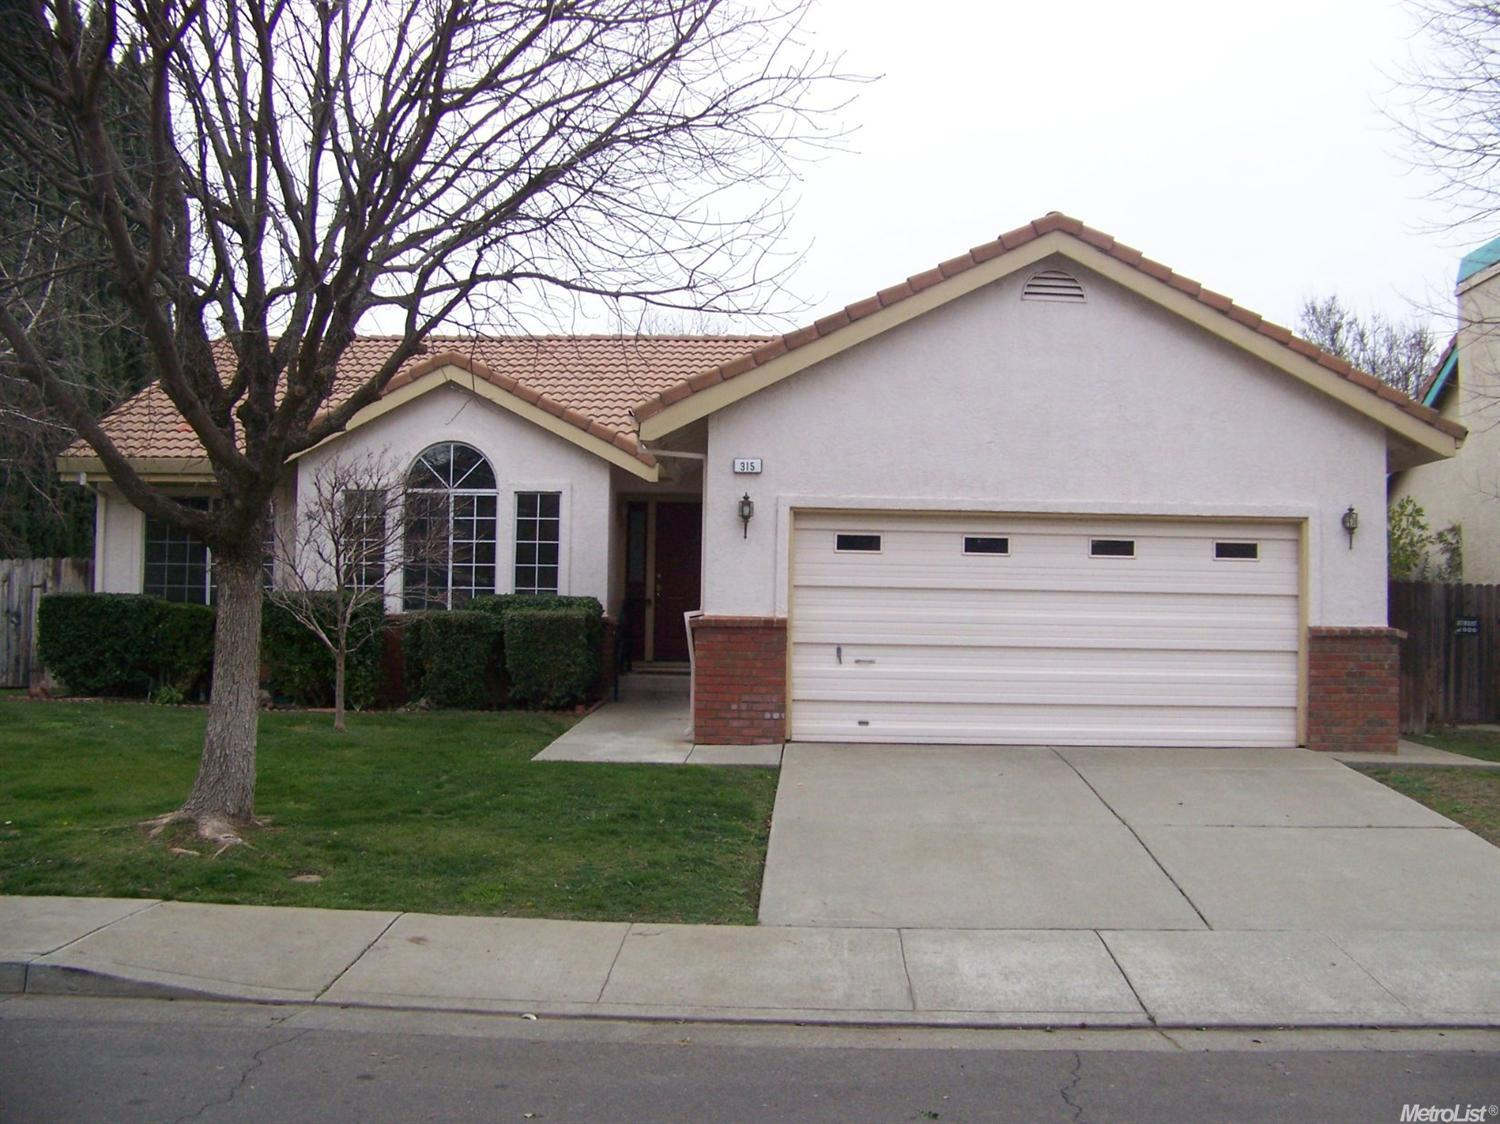 315 Hillview Ln, Winters, CA 95694